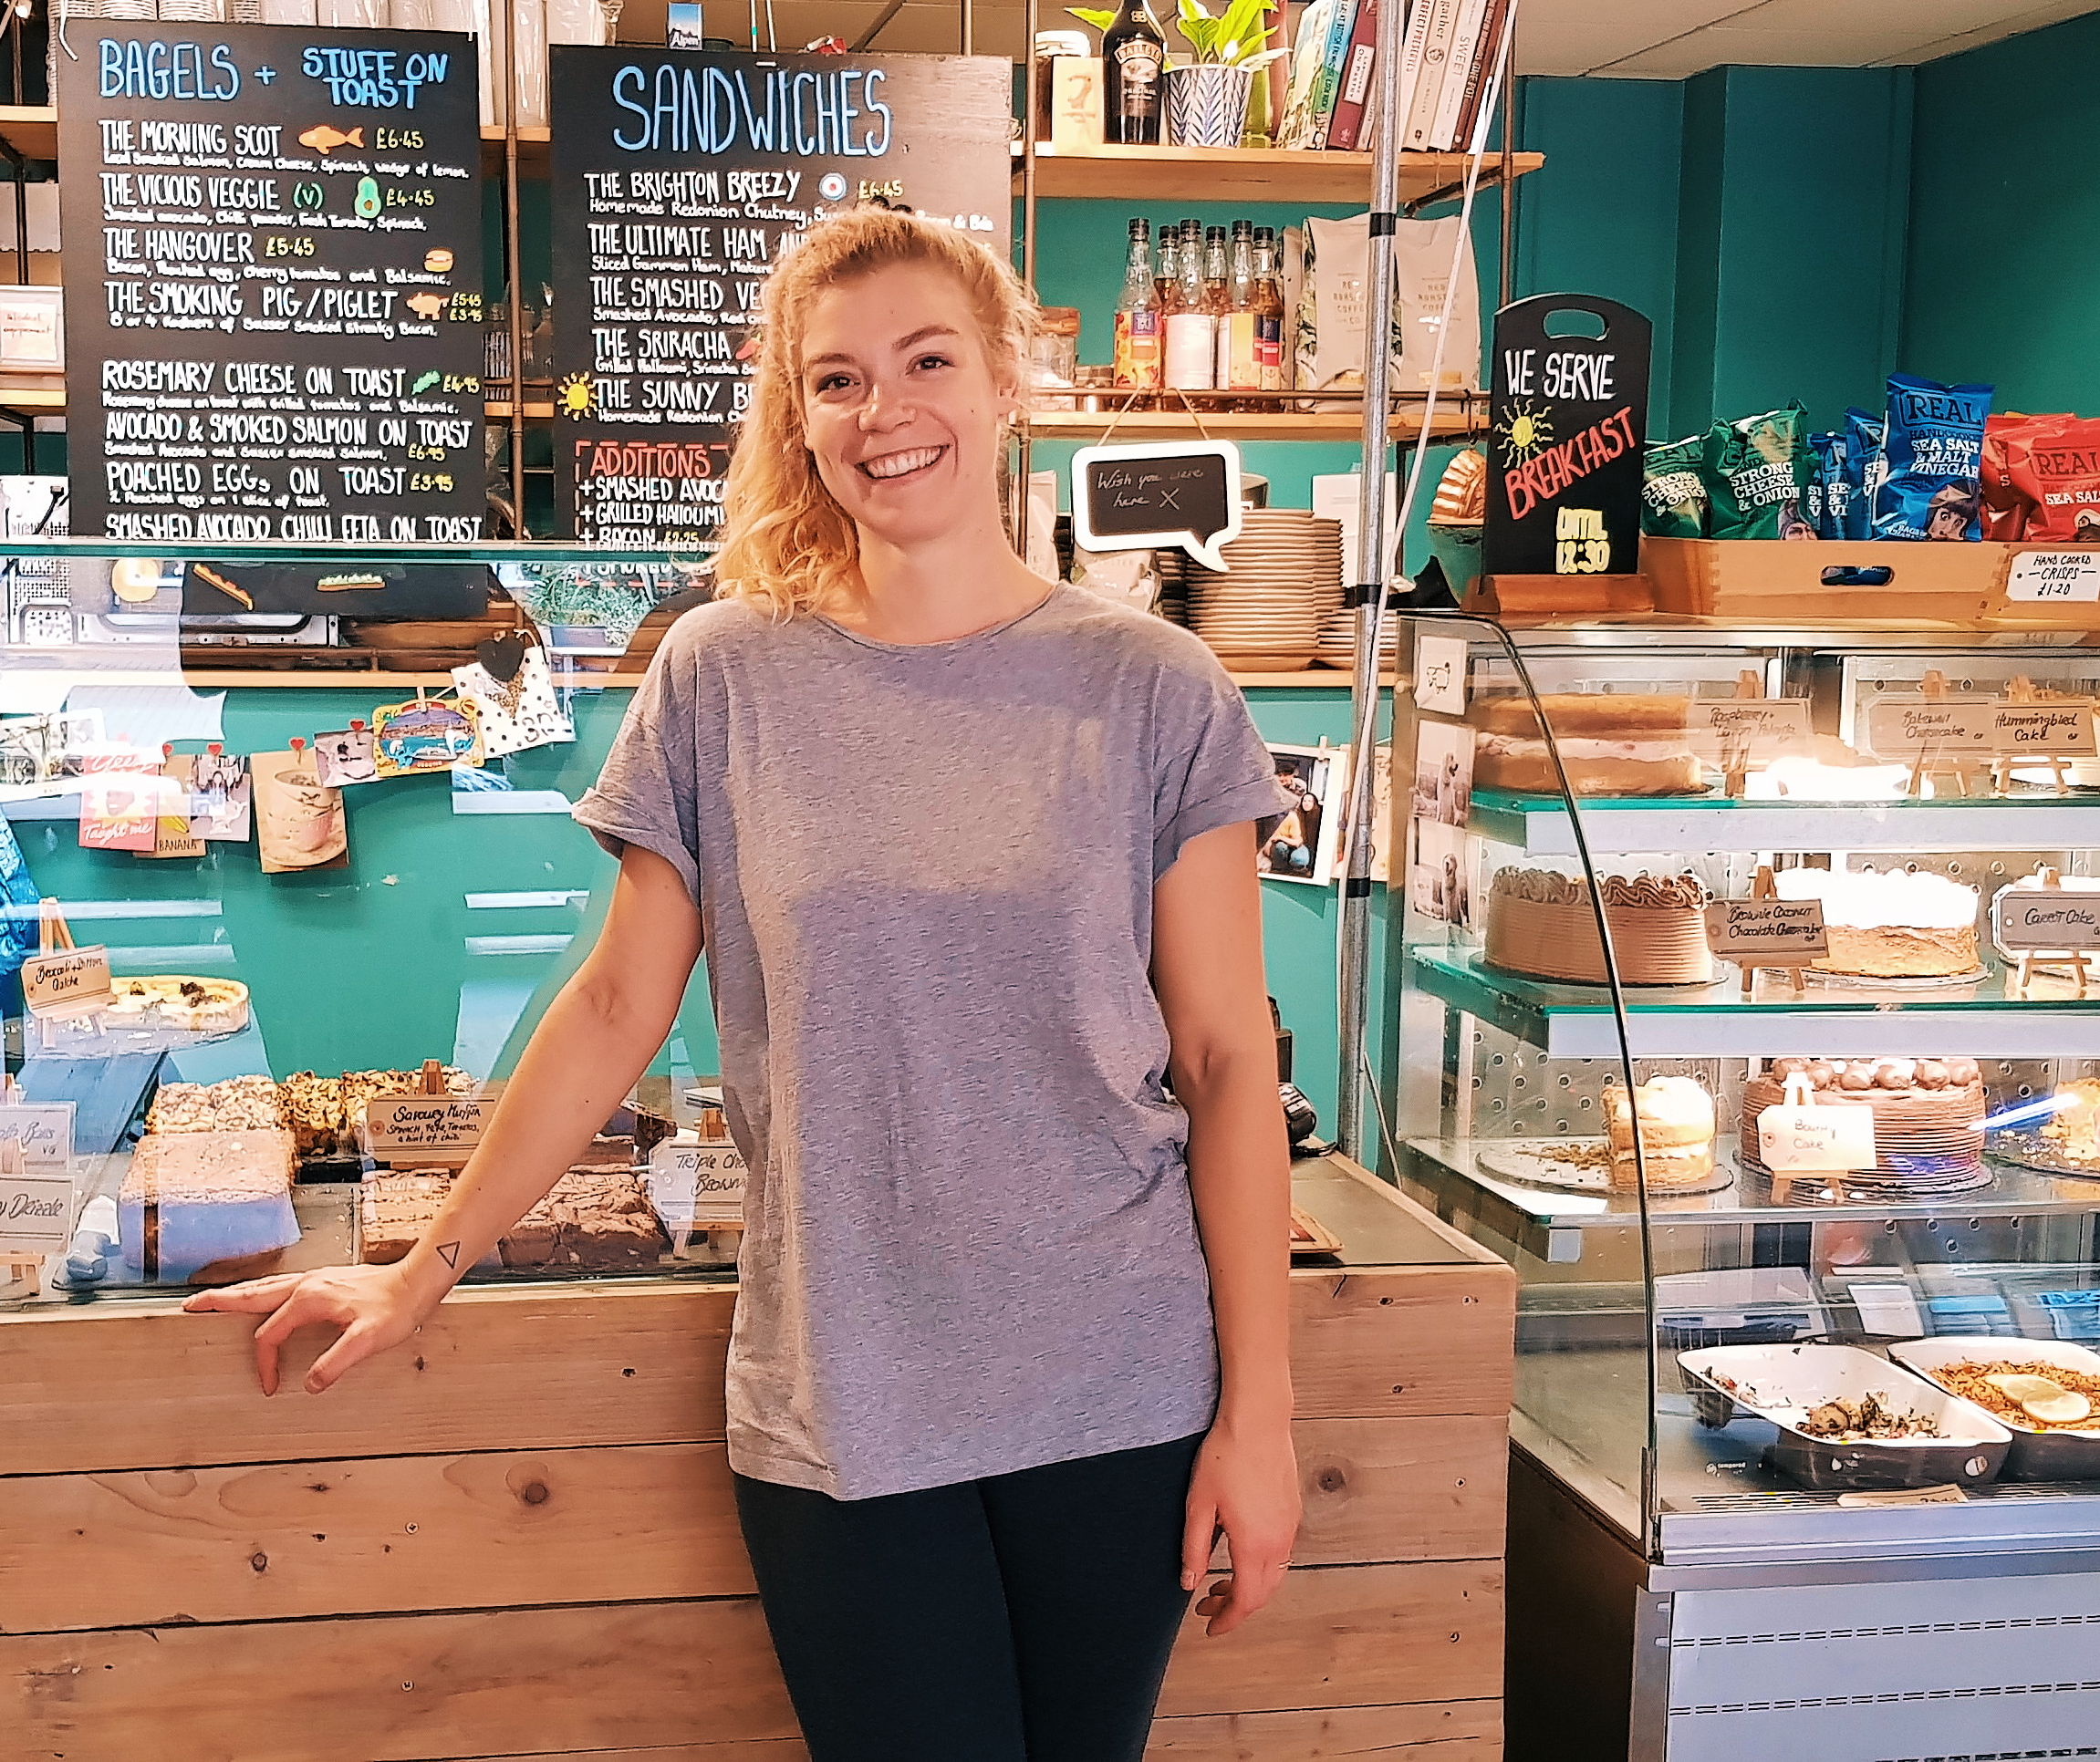 Meet Ella - Our head baker Ella has been with us for over two years. She brought with her some fantastic recipes, a huge passion for all things food and a heck load of charm. Below, we ask her some questions so people can know more about the gal behind the bakes.